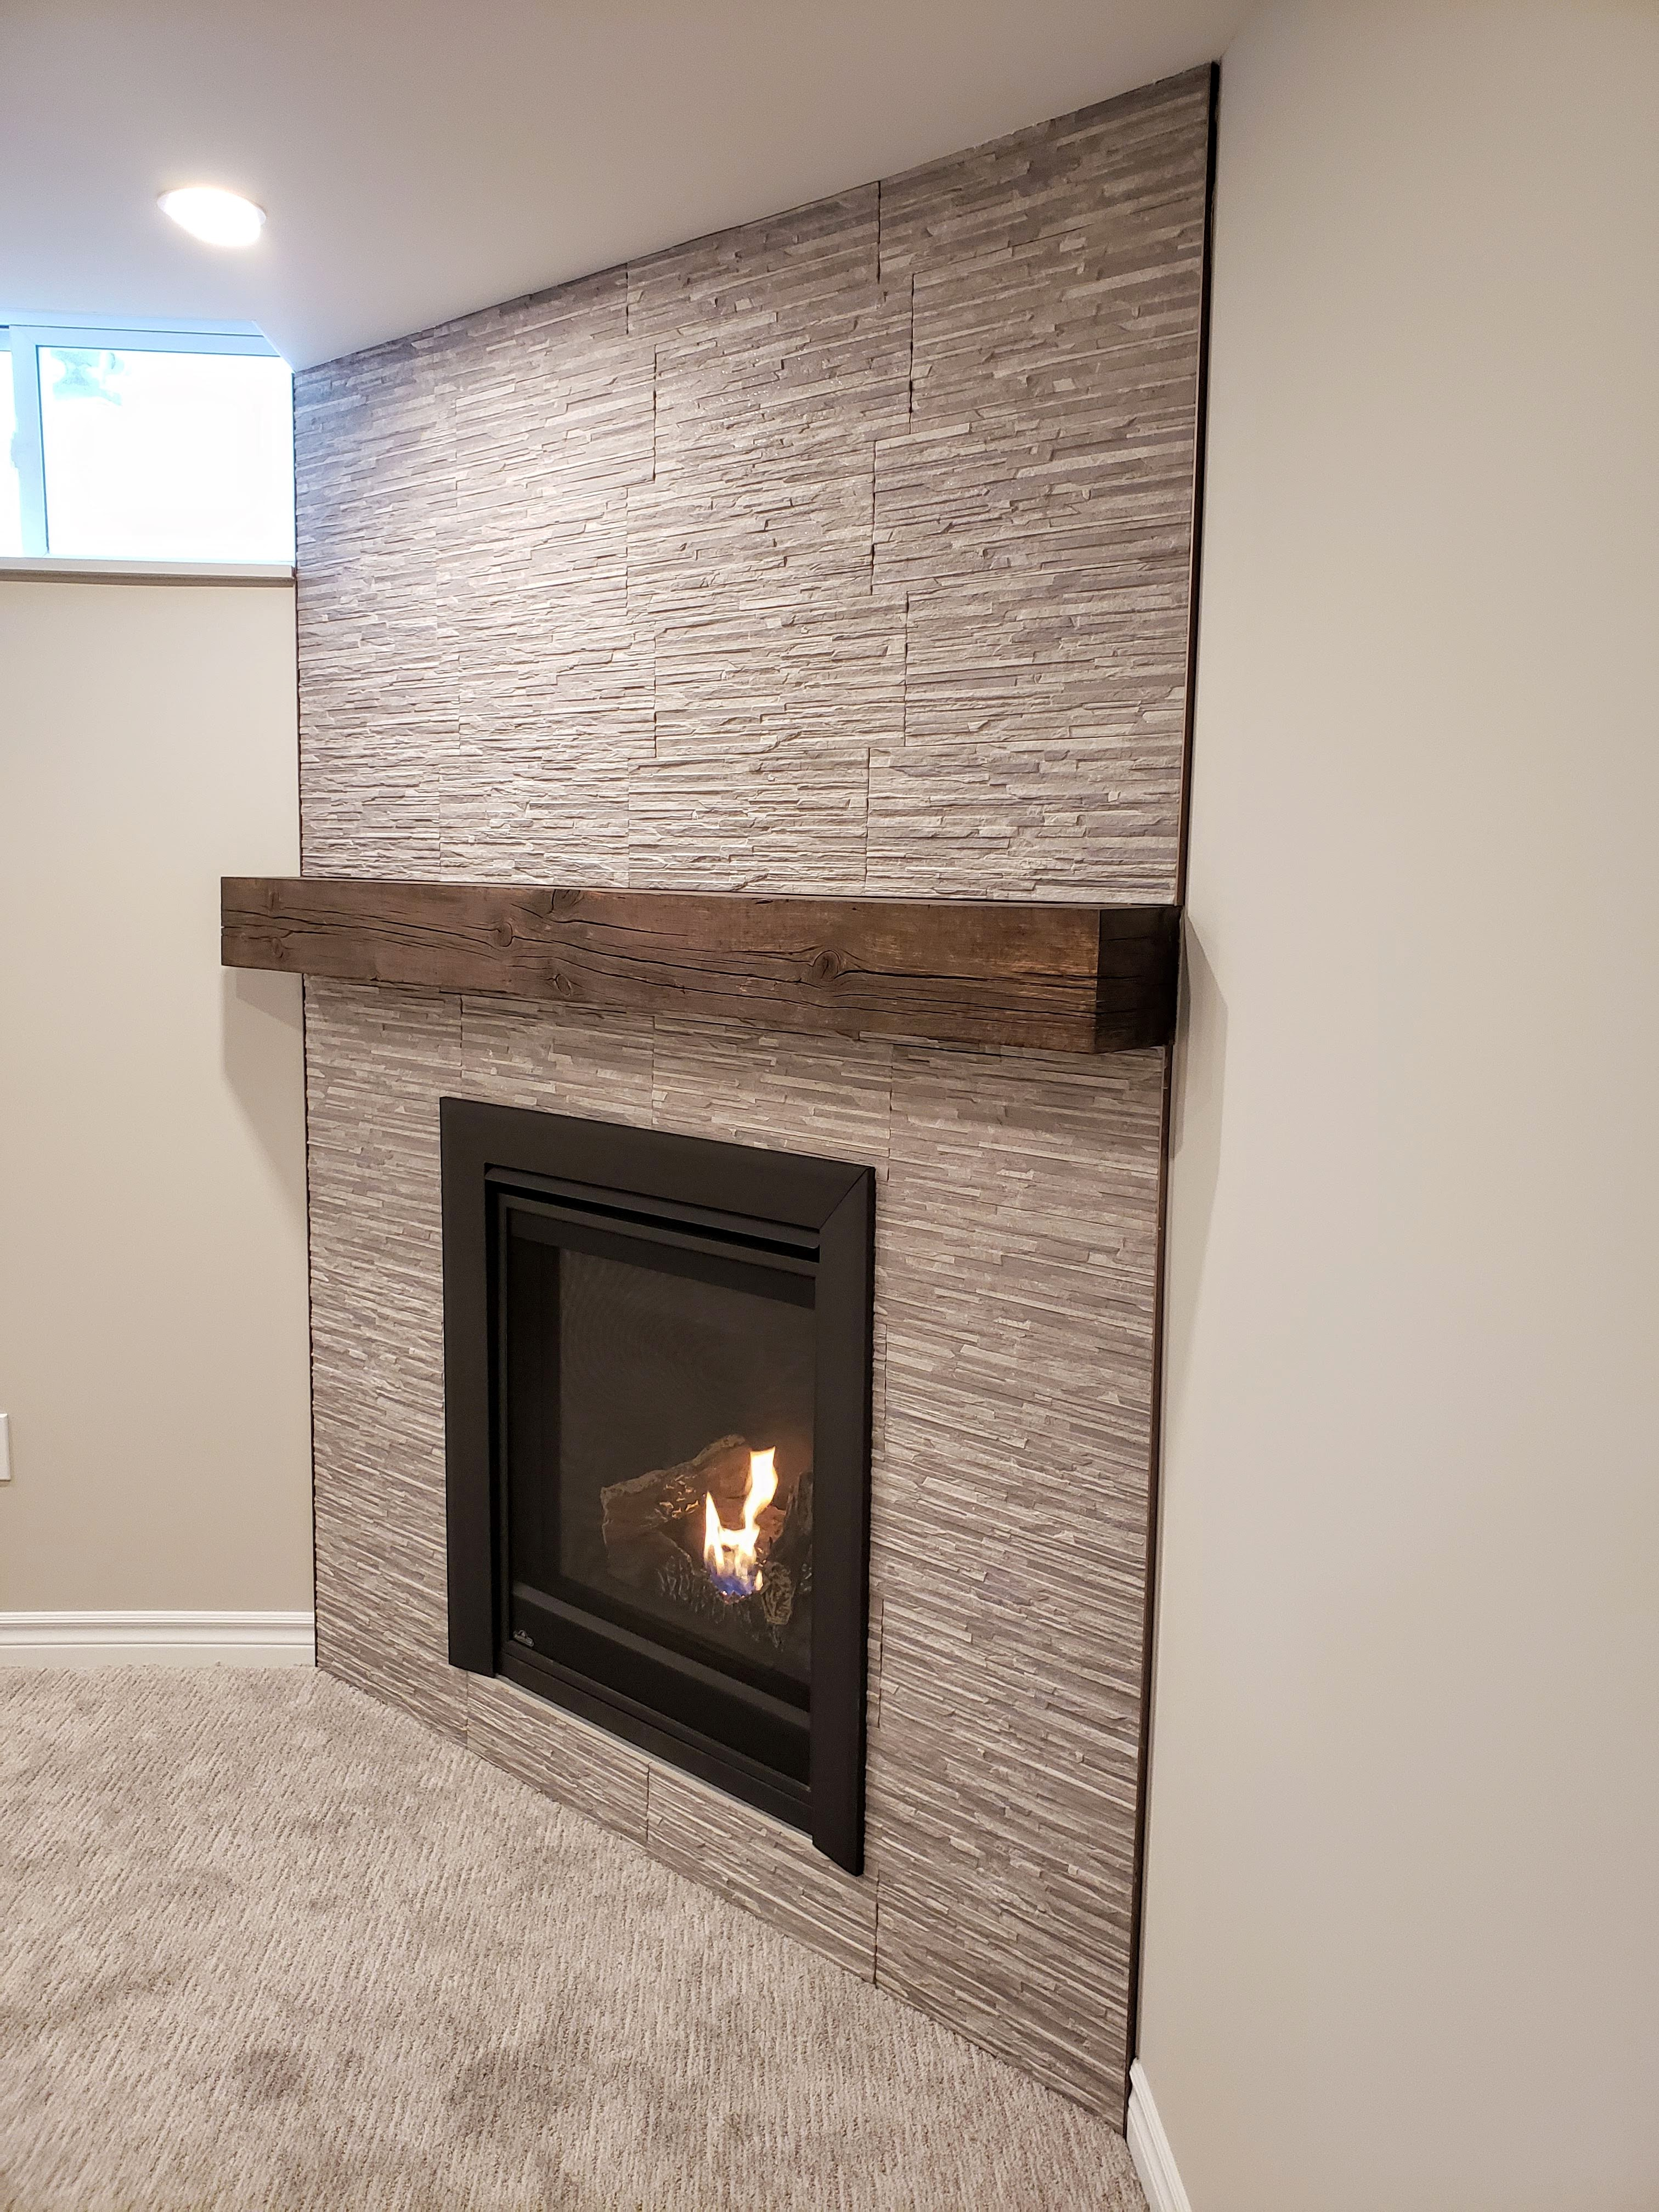 Basement fireplace with tile surround and rustic mantel by Germano Creative Interior Contracting Ltd.